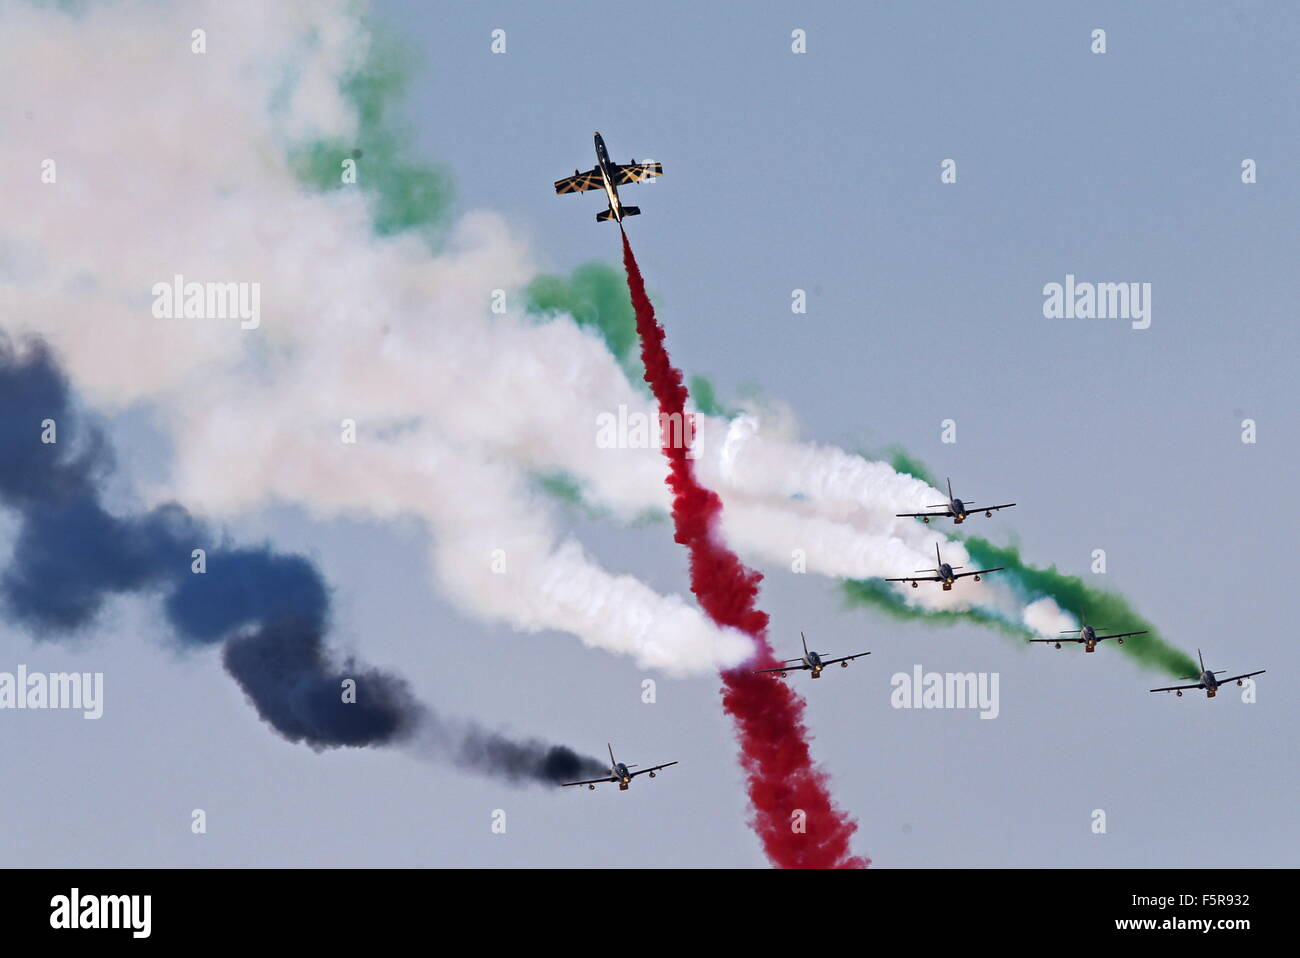 Dubai, Emirati Arabi Uniti. 8 Novembre, 2015. UAE Air Force aerobatic team Al Fursan in volo al 2015 Airshow di Immagini Stock